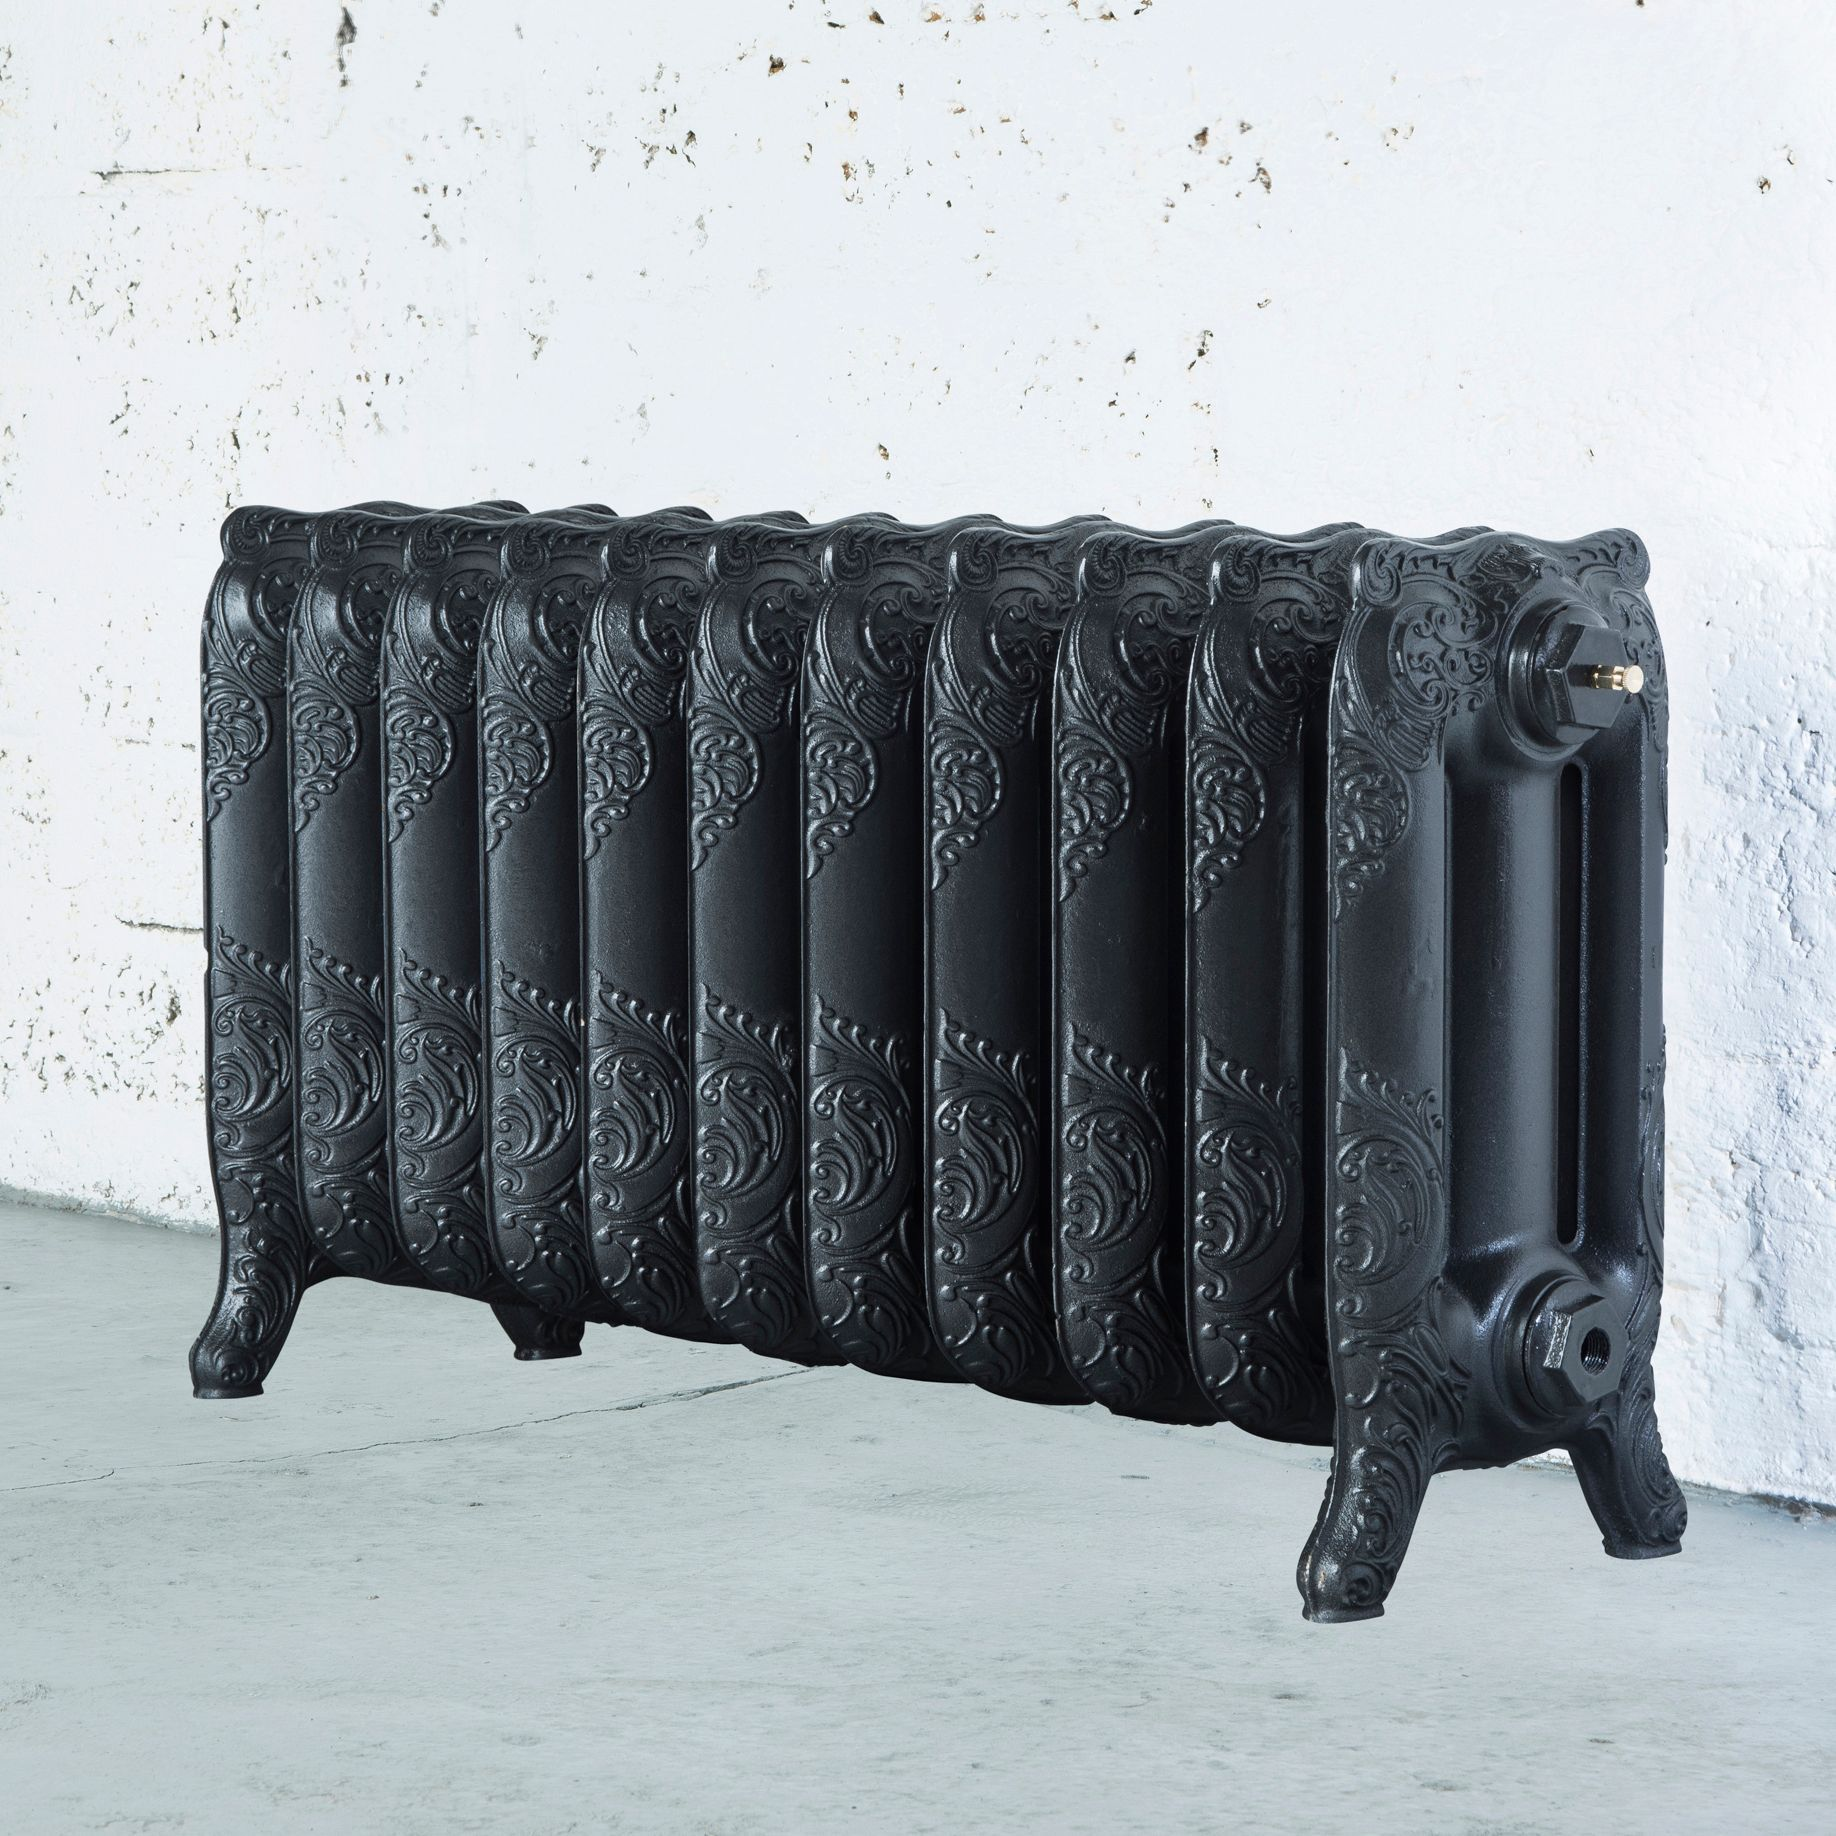 Arroll Montmartre 3 Column radiator, Pewter (W)914mm (H)470mm